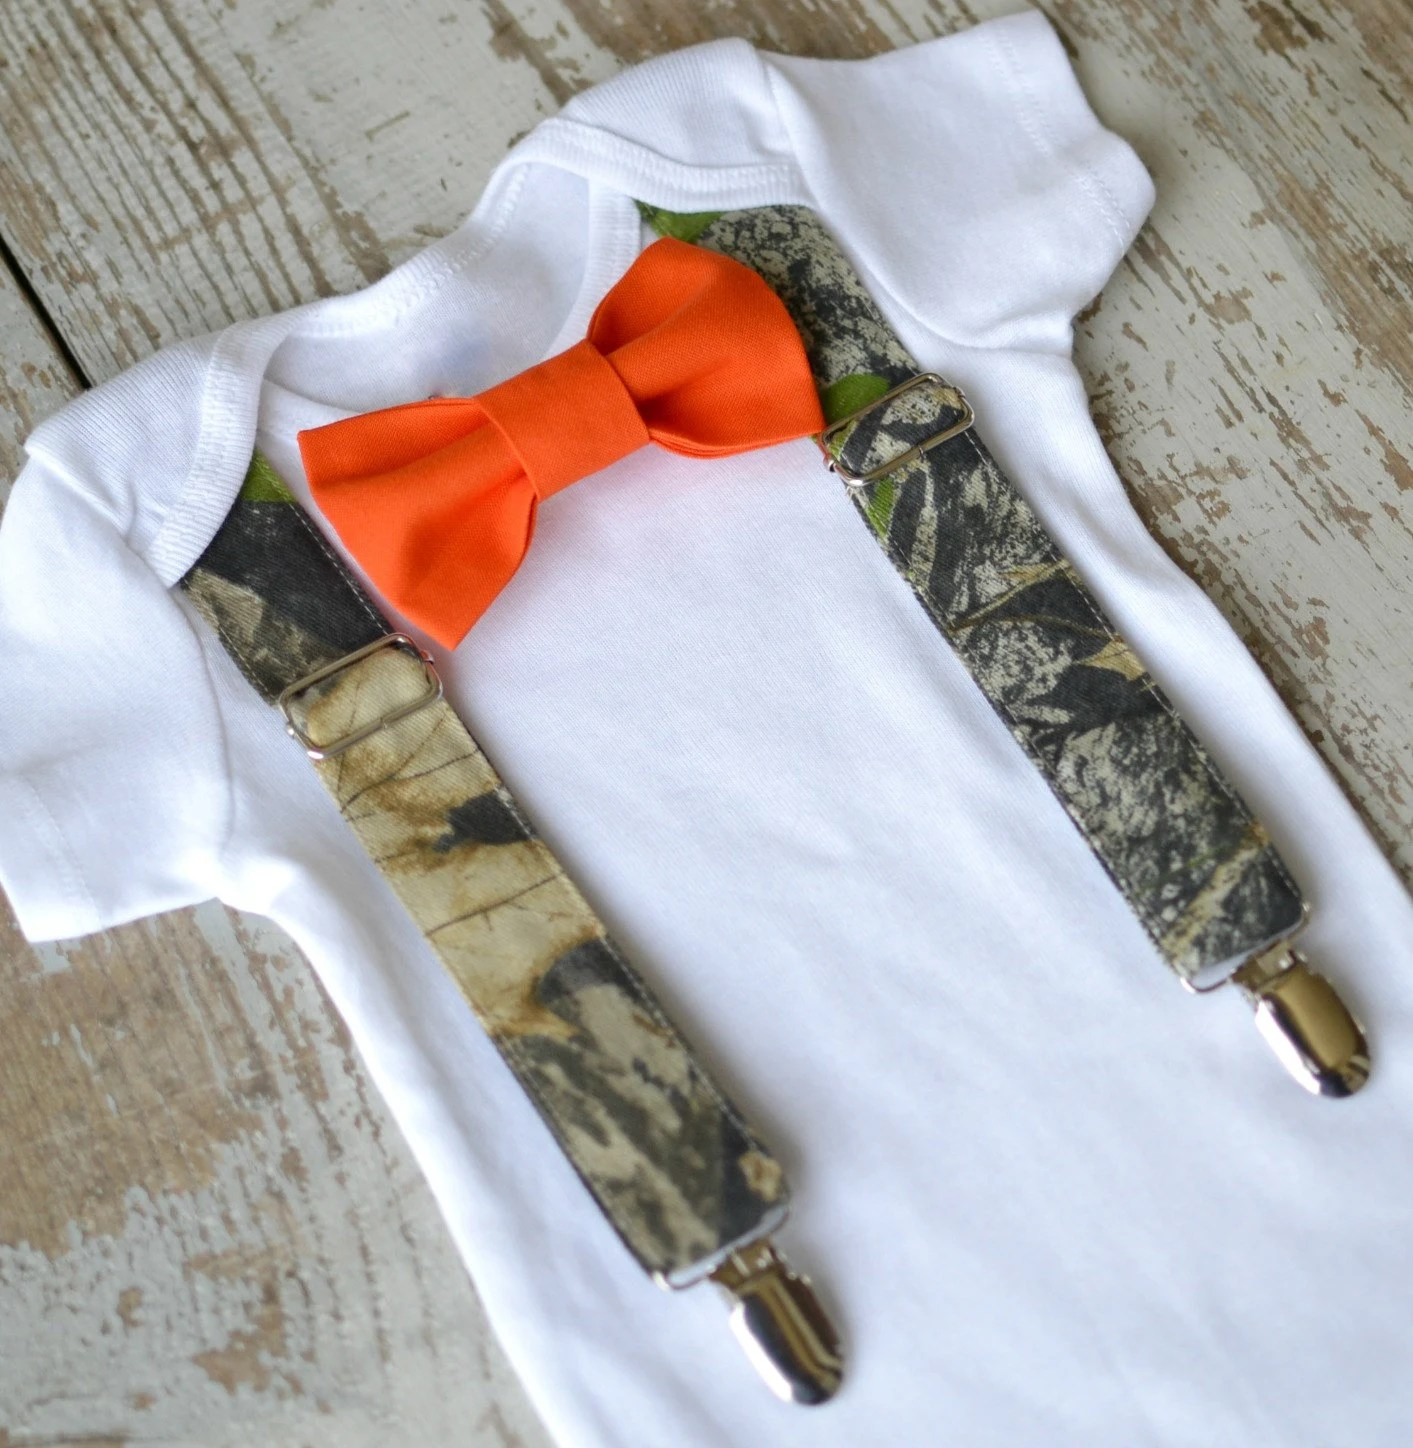 camo wedding vest hunting wedding bands Baby Boy Clothes Camo Suspenders Orange Bow Tie Boys Camouflage Tuxedo First Birthday Coming Home Outfit Deer Hunter Ring Bearer Wedding